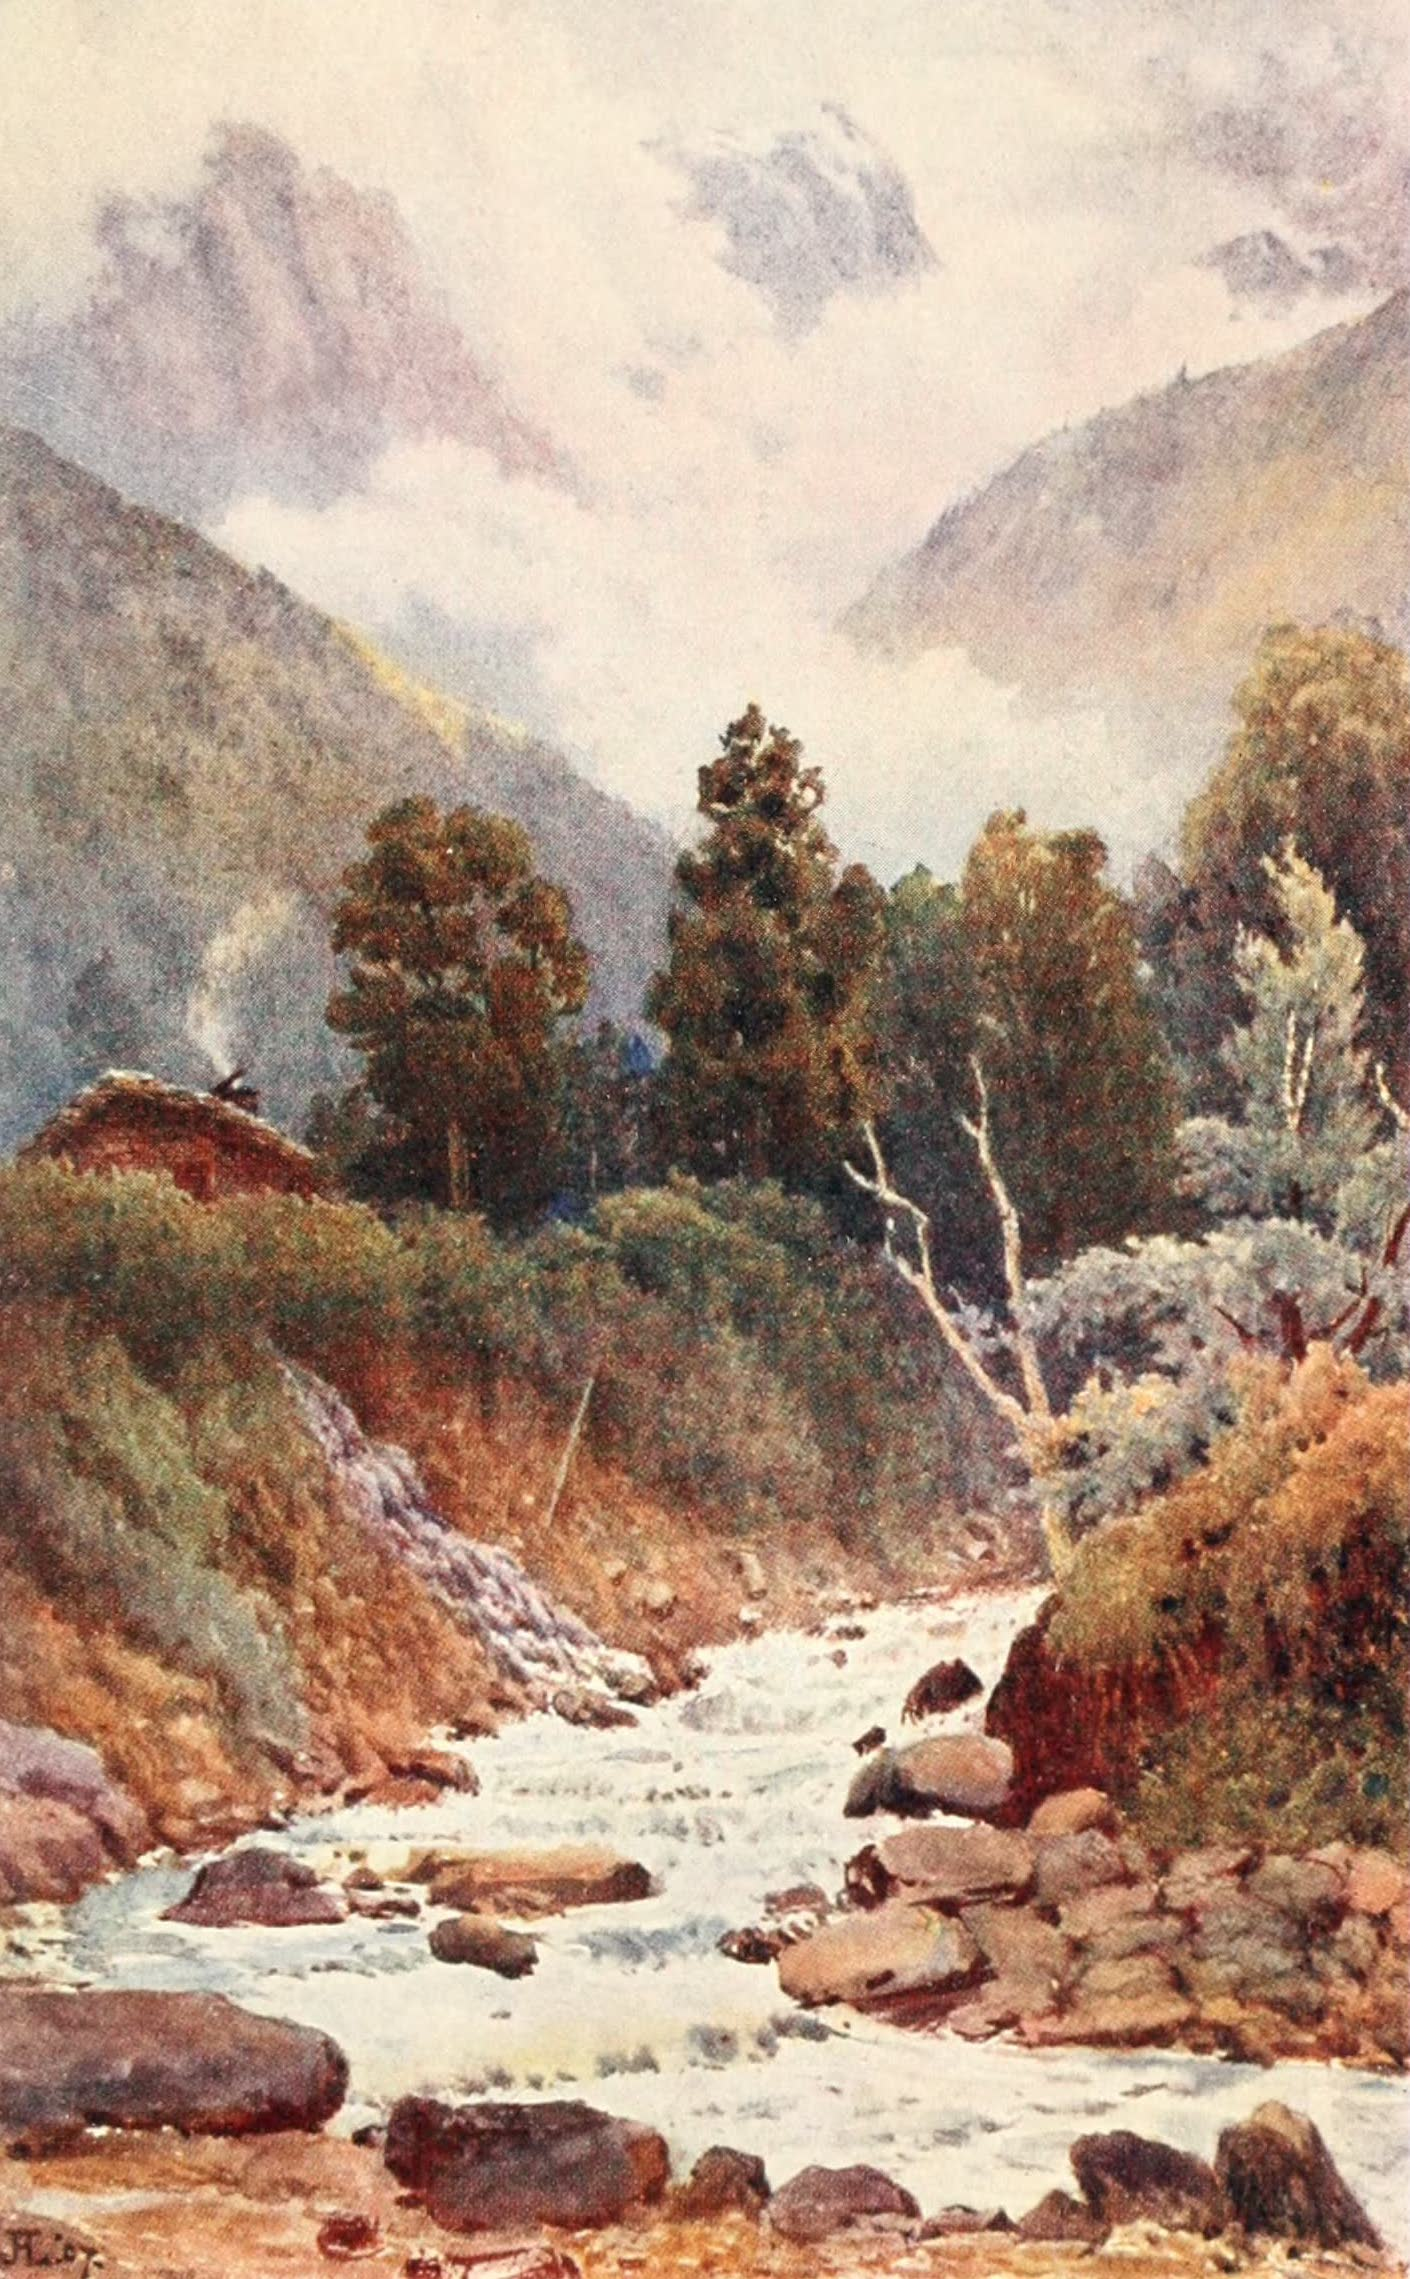 Montreux, Painted and Described - The River Morges at St. Gingolph (1908)